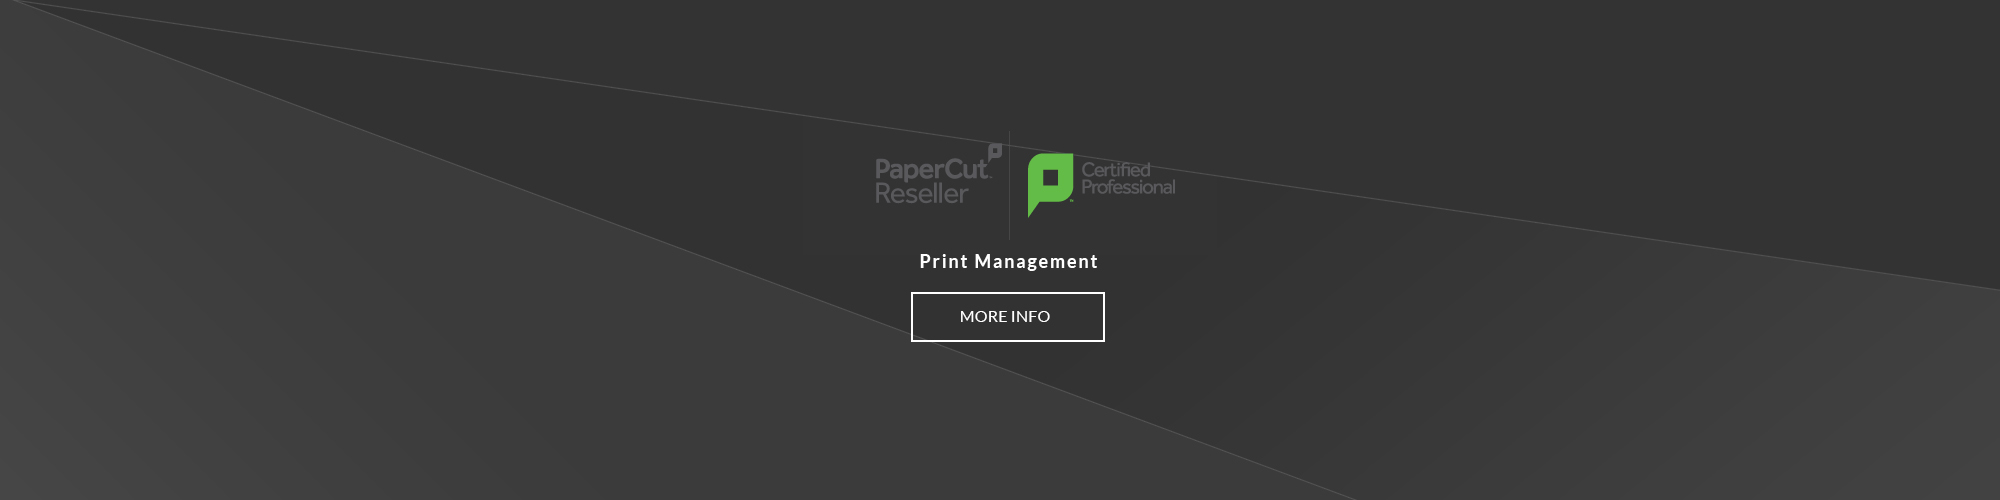 Print Management Papercut Reseller